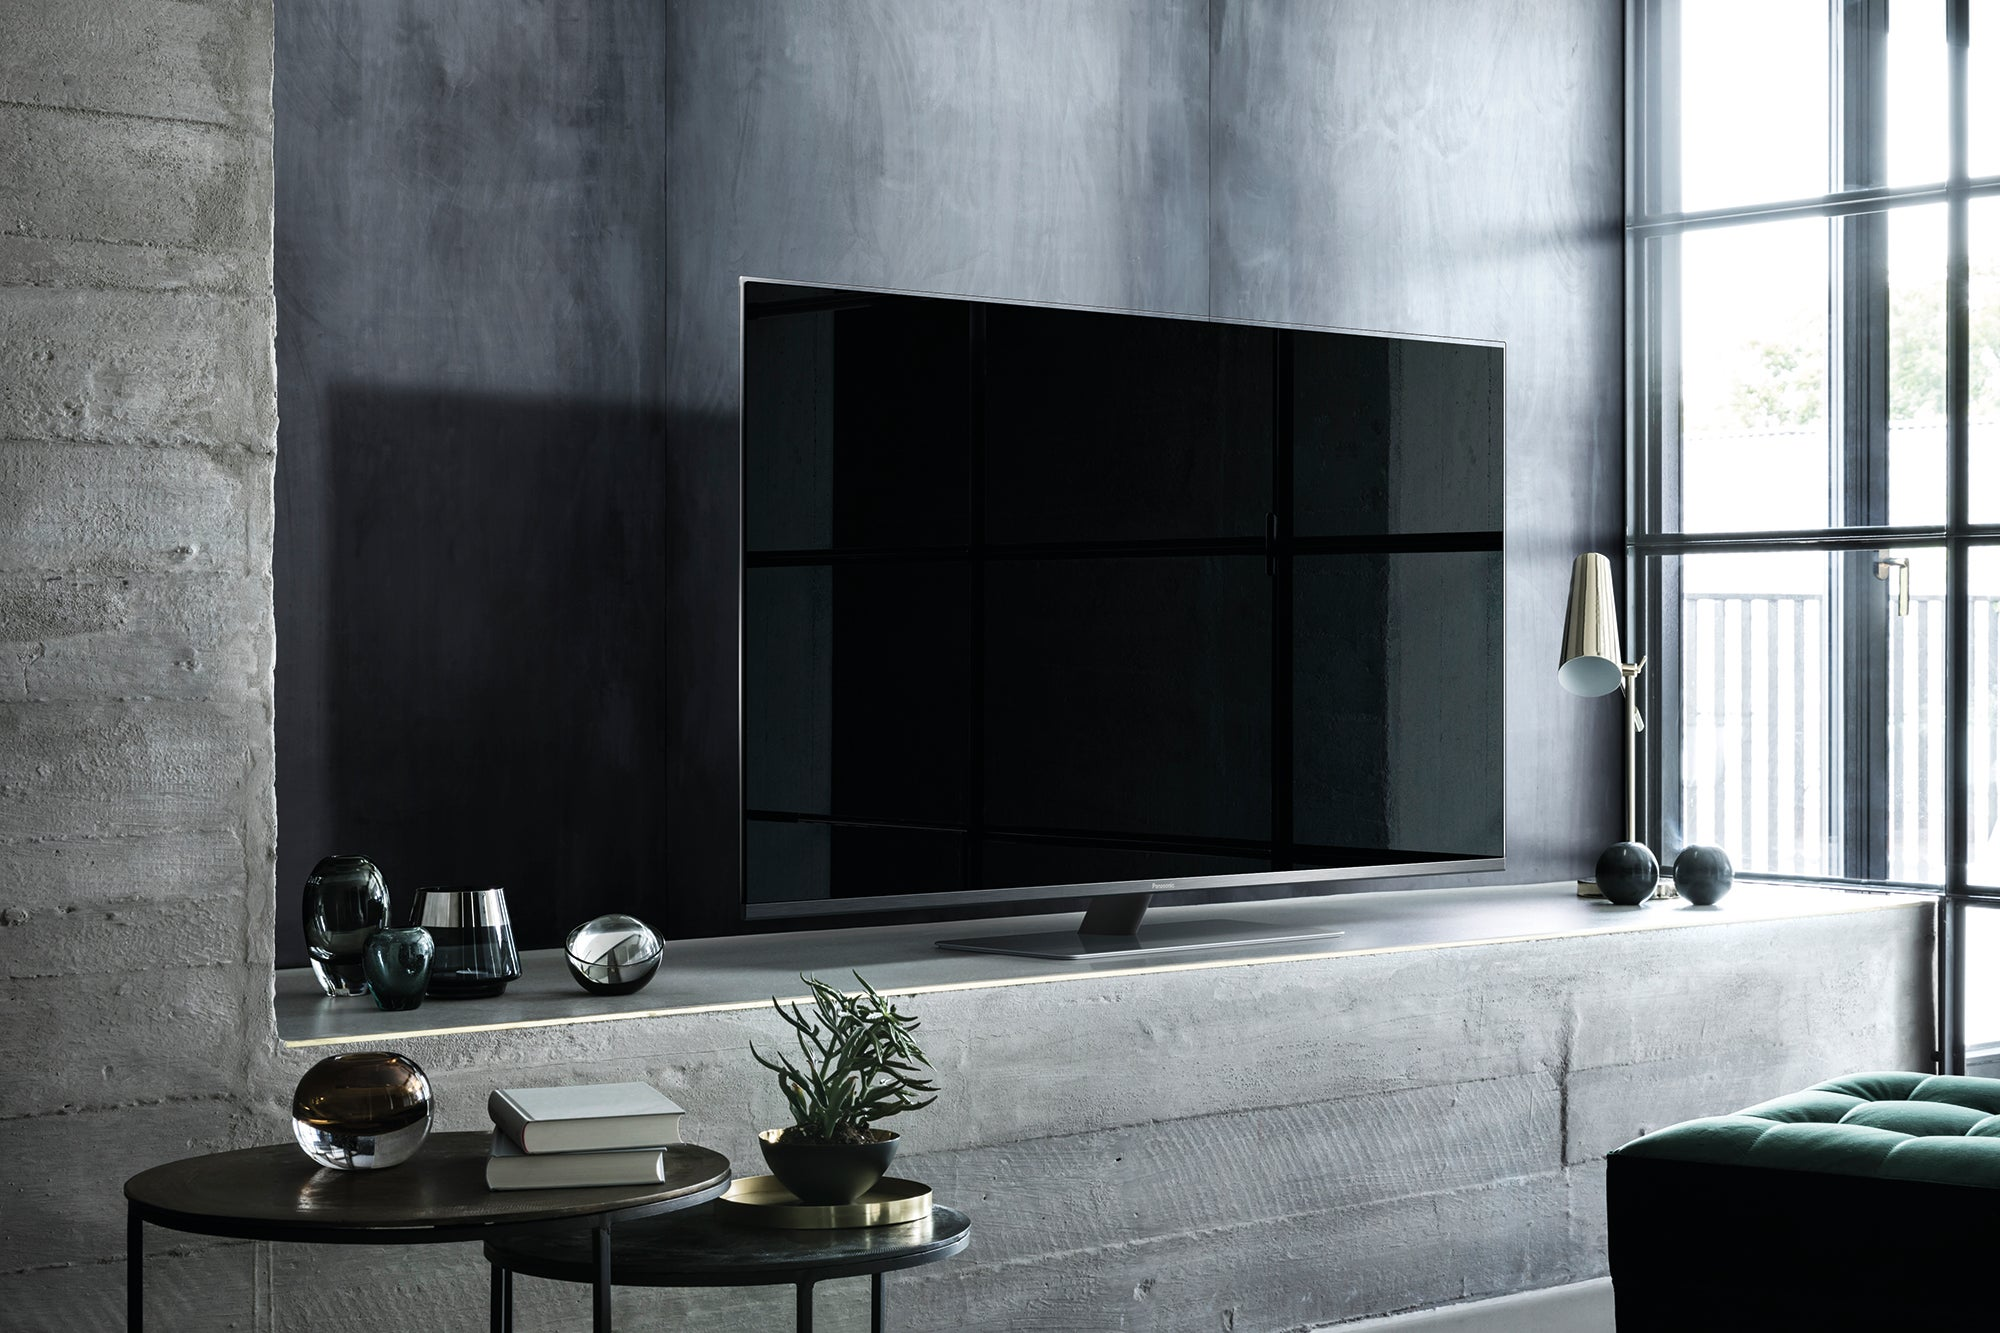 Panasonic reveals four new 4K TVs to expand 2018 range